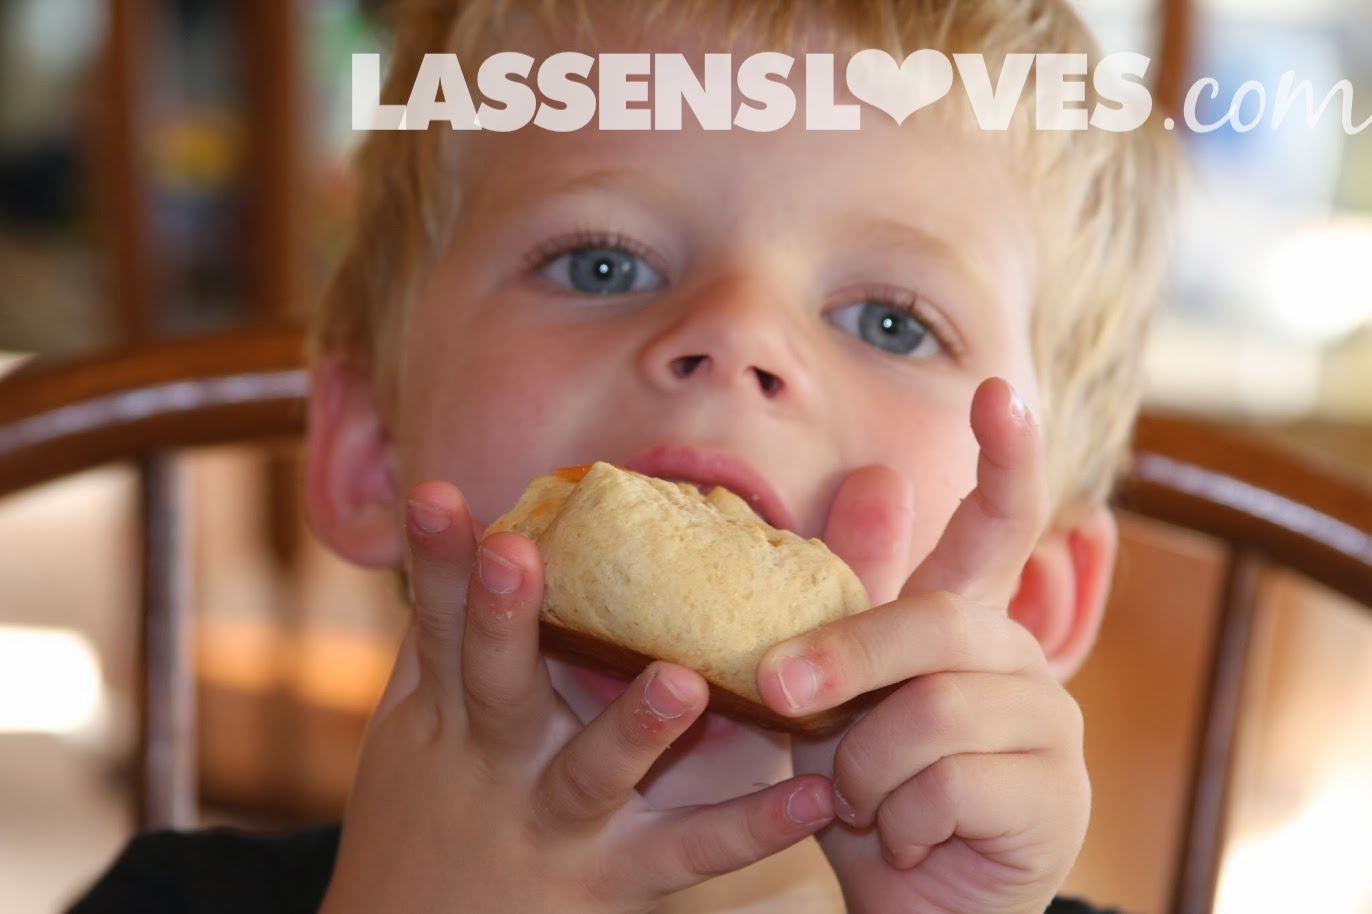 lassensloves.com, Lassen's, Lassens, healthy+lunches, lunch+ideas, lunch+rolls, lunch+pockets